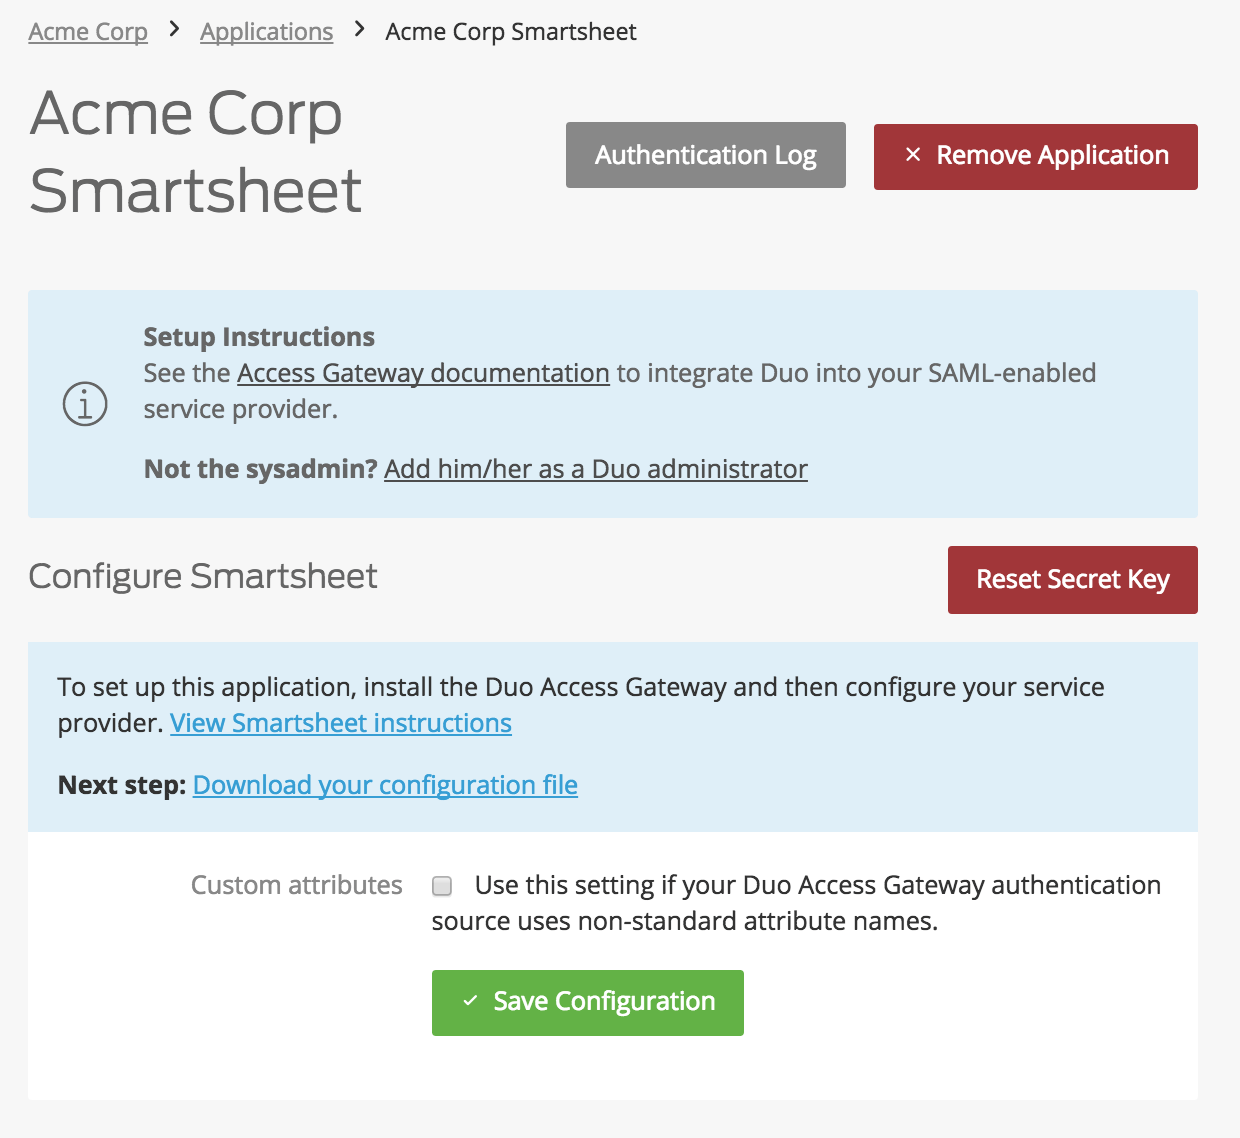 Duo Smartsheet Application Settings